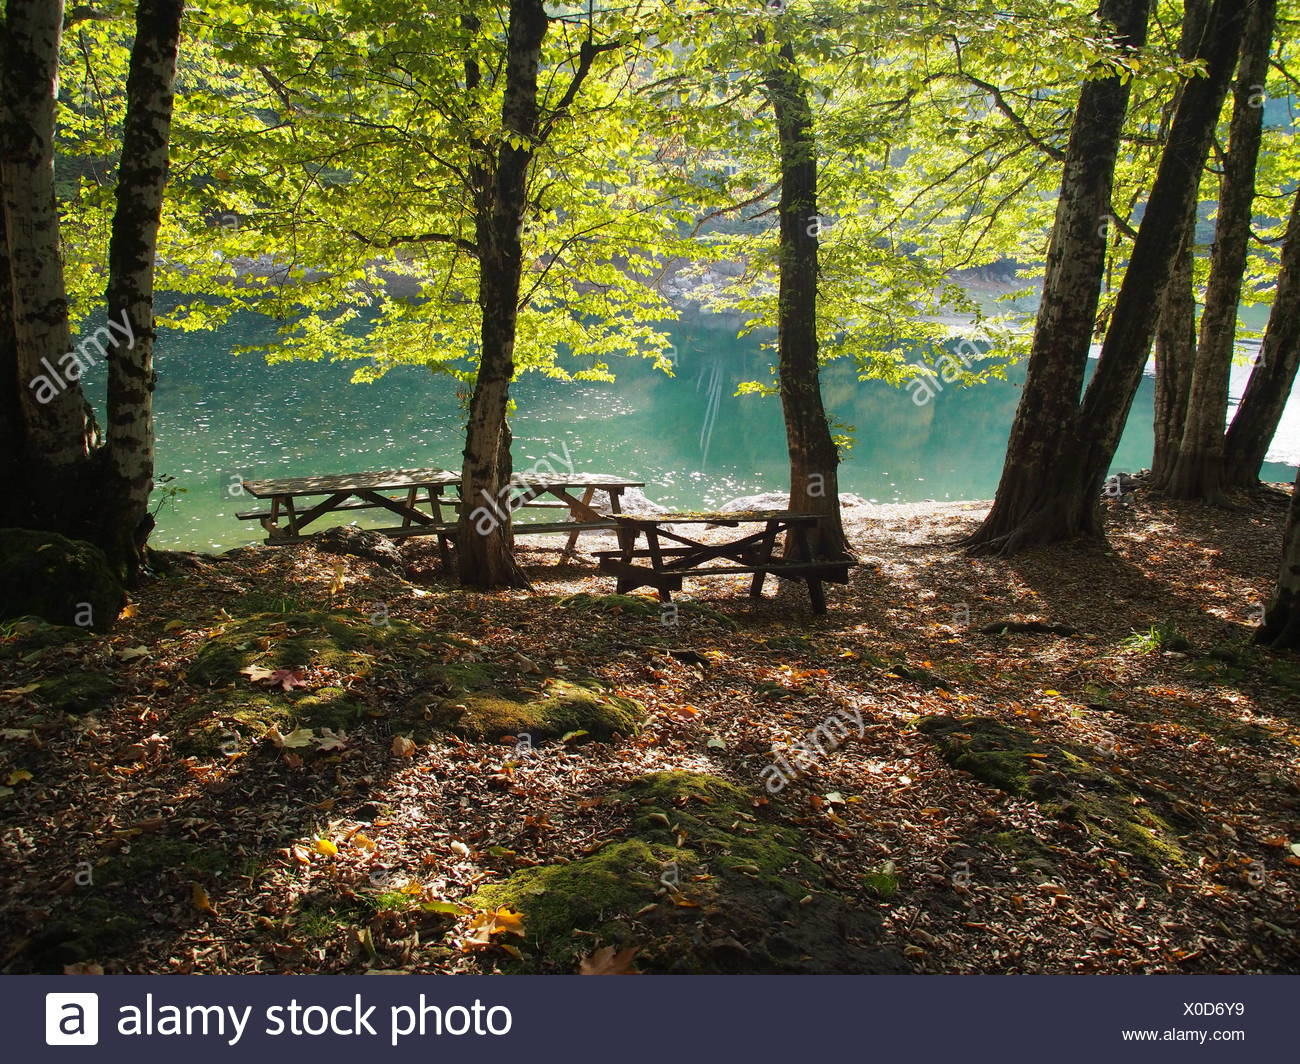 Trees on a riverbank, Yedigoller, Turkey - Stock Image